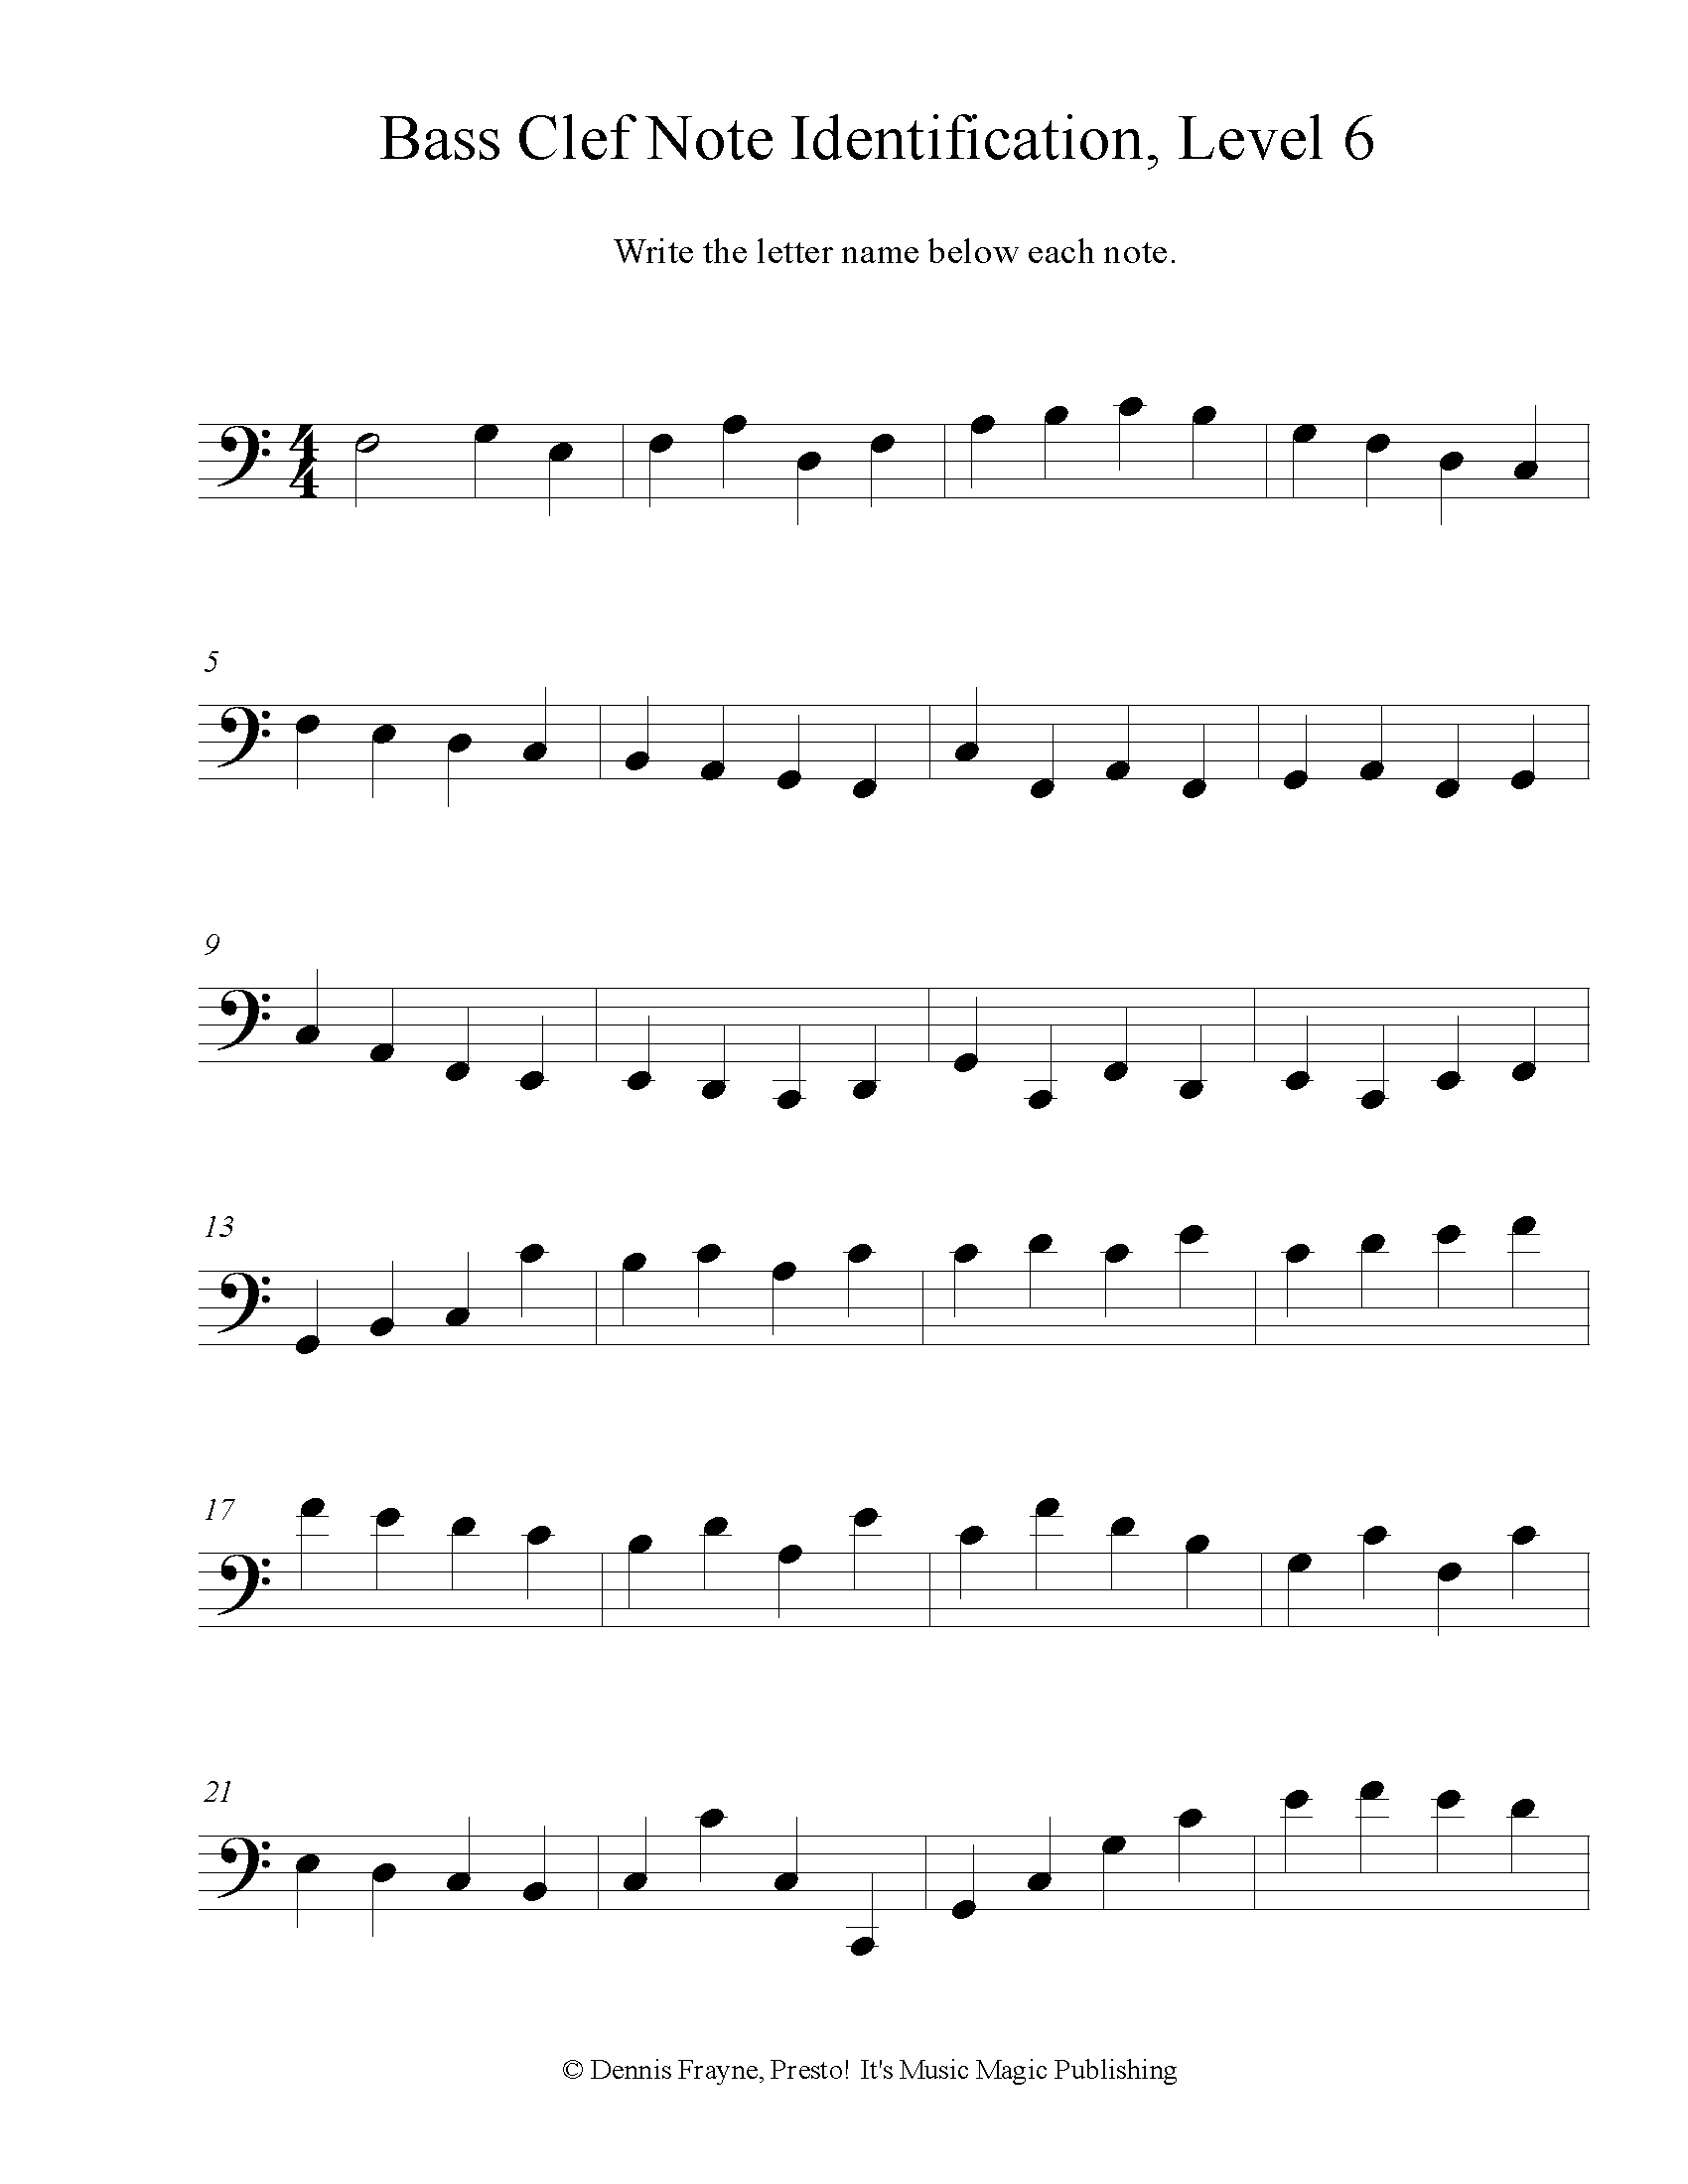 Bass Clef Note Identification, Intermediate, Level 6 2 pages